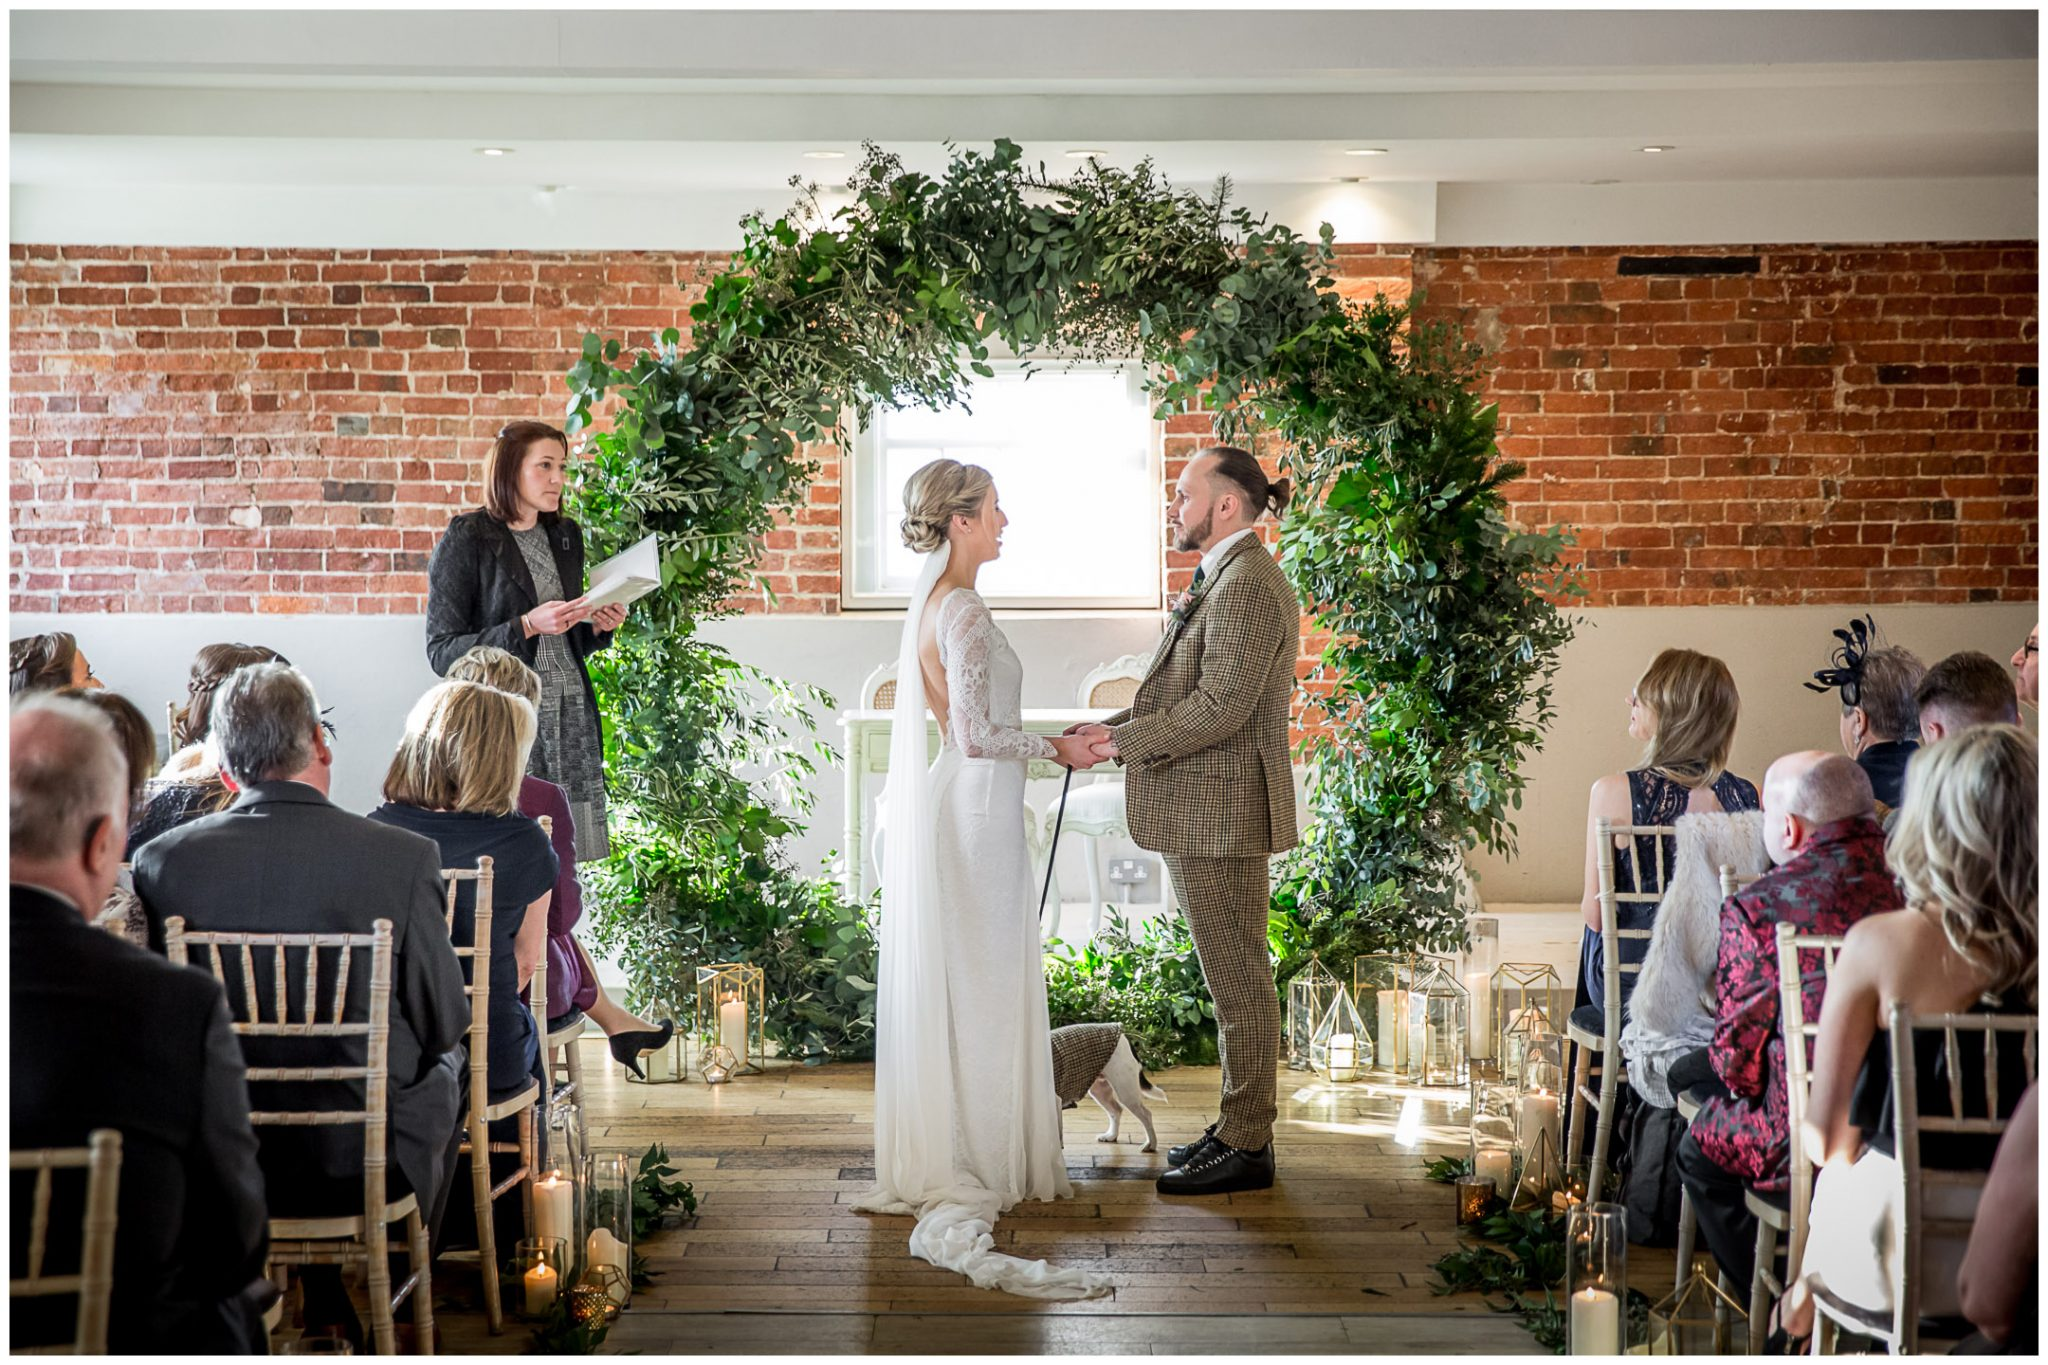 The couple turn to face each other in front of a magnificent floral moon gate feature